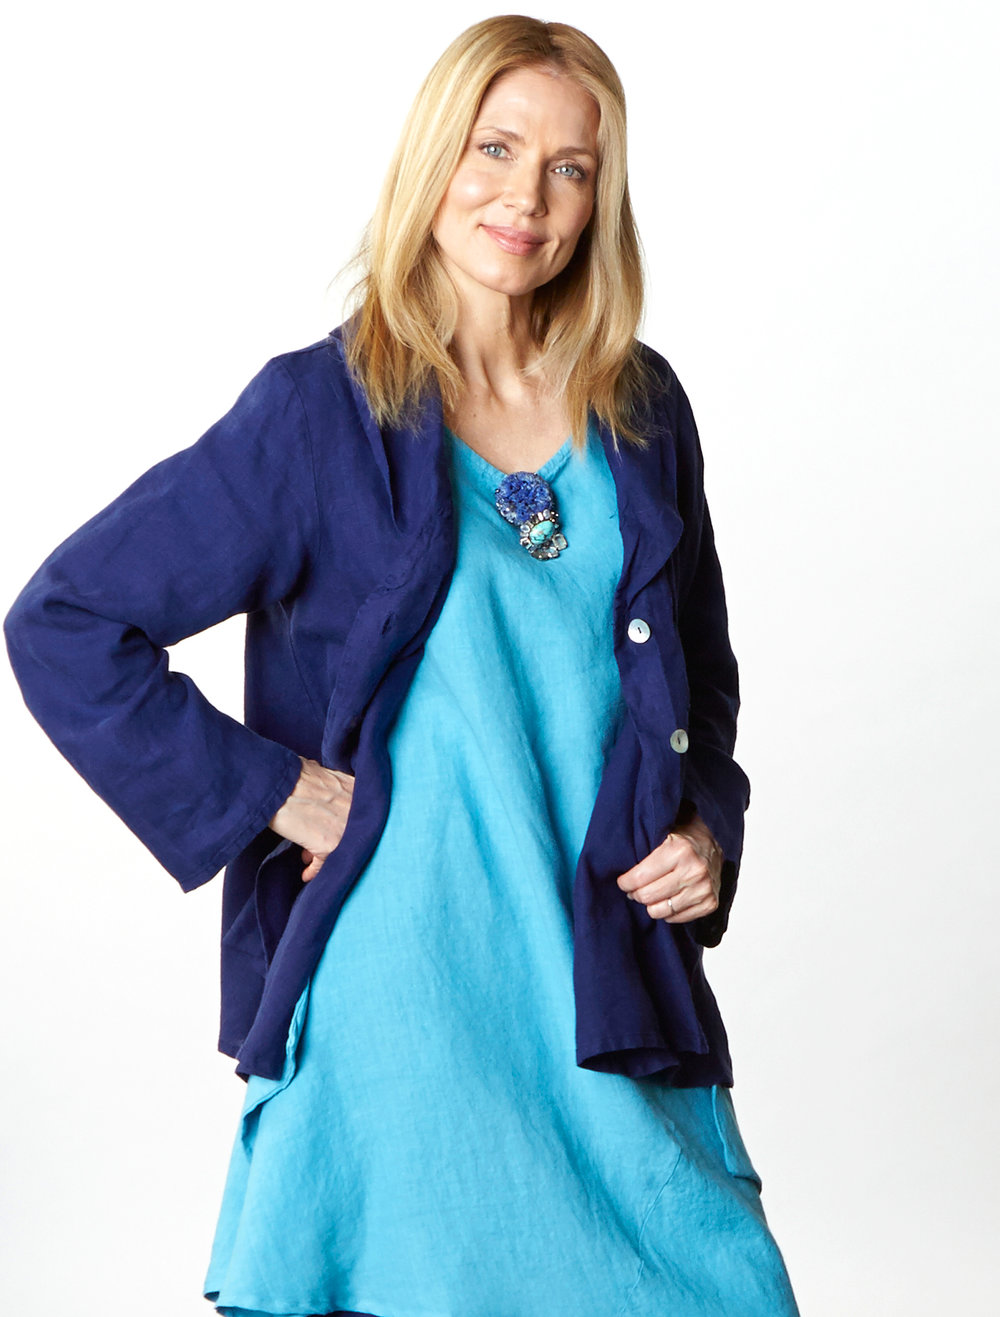 Barnaby Jacket in Starling, Naida Tunic in Umbrella Light Linen